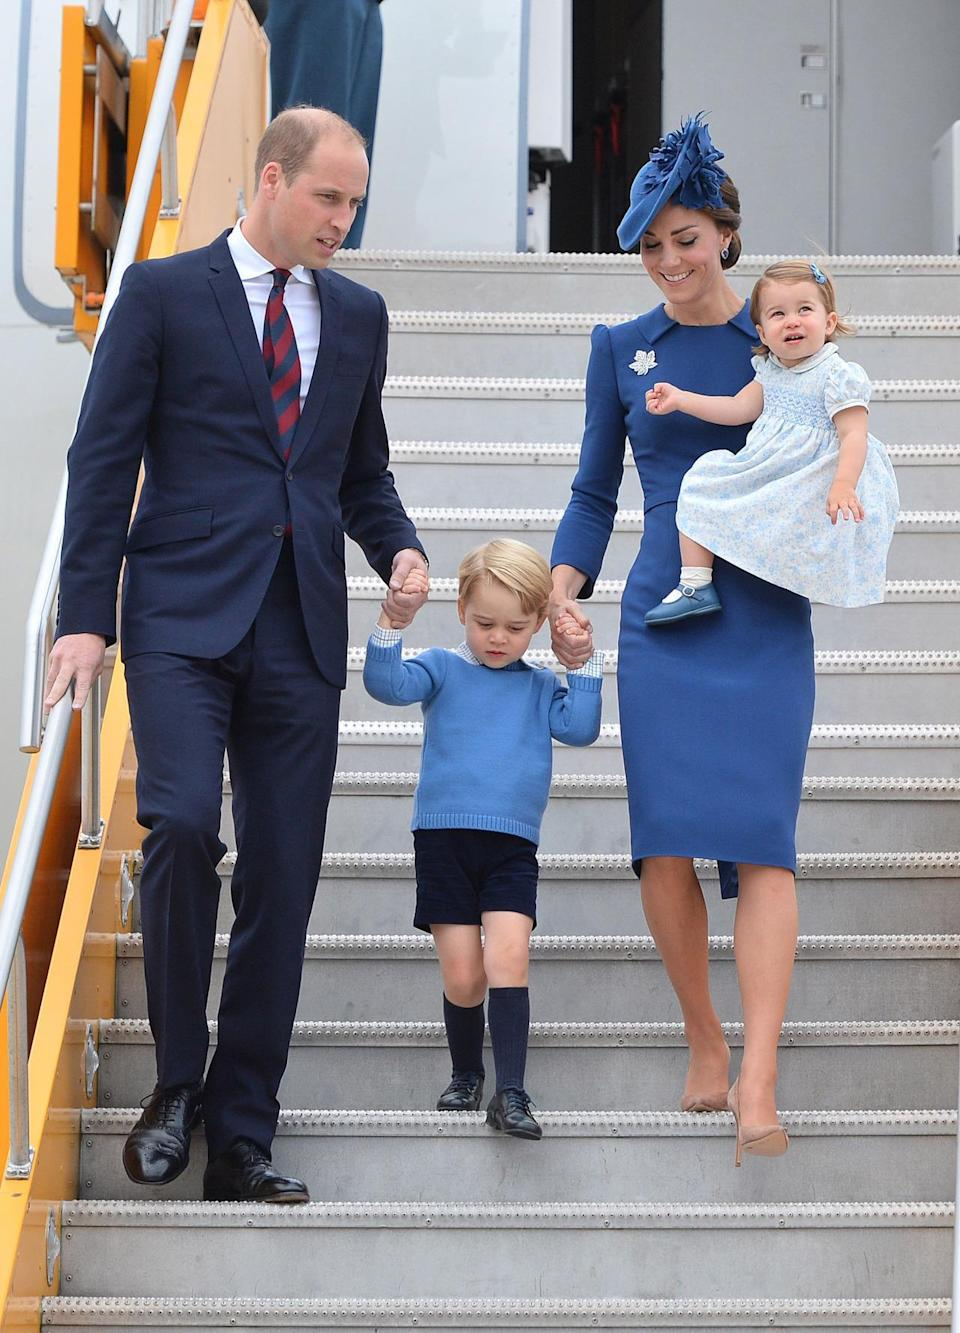 <p>Kate touched down in Canada for the first day of the 2016 royal tour wearing an elegant Jenny Packham dress, a matching blue maple leaf hat and suede Gianvito Rossi pumps. </p><p><i>[Photo: PA] </i></p>